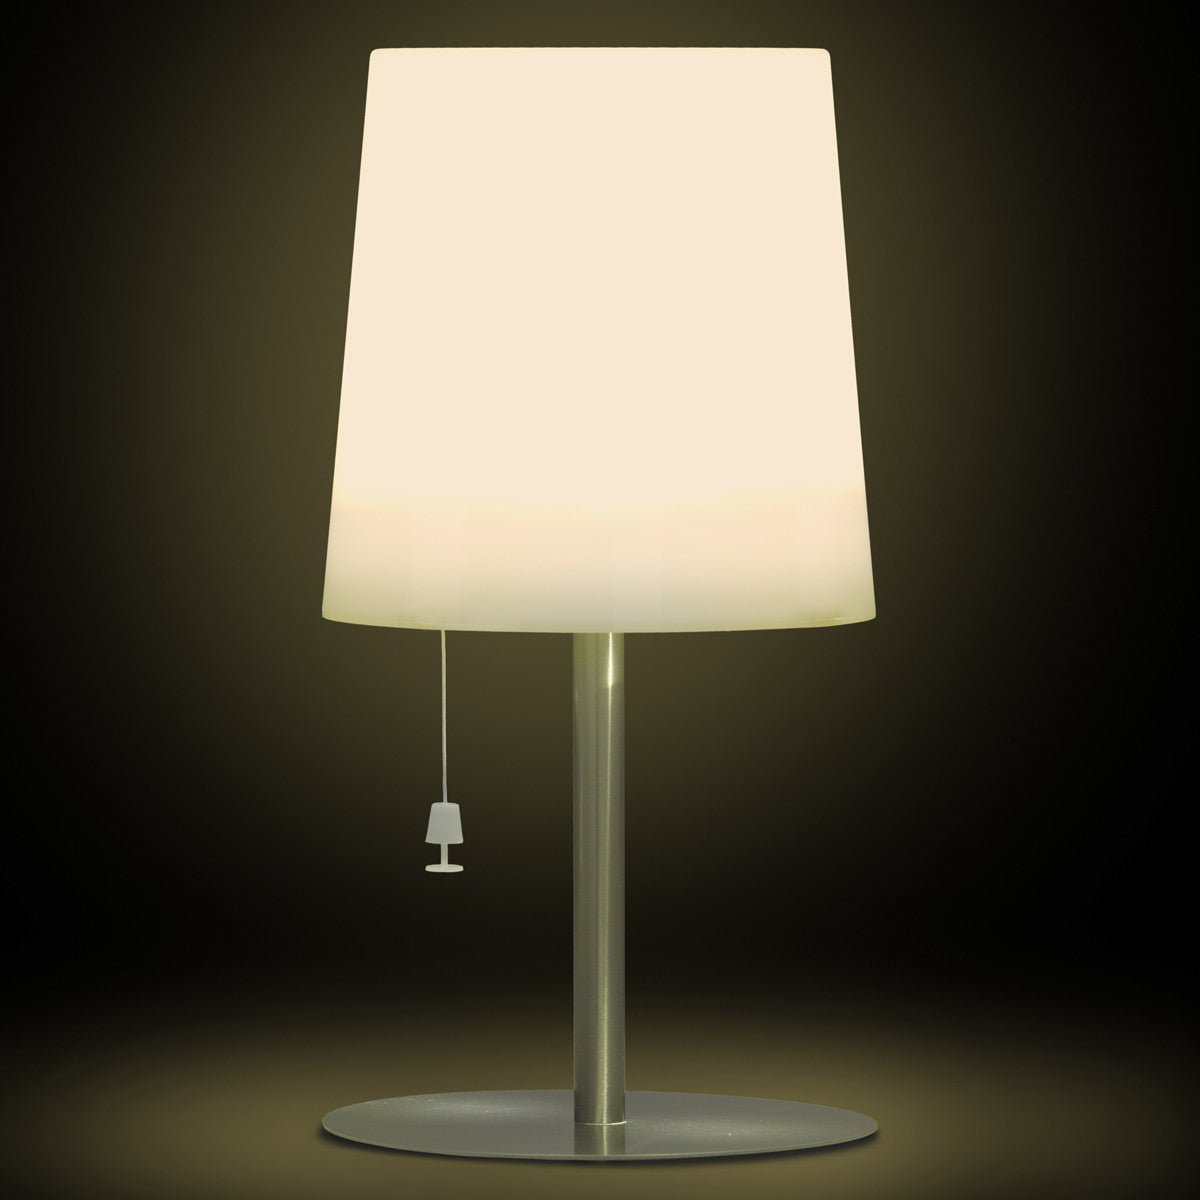 filini solar table lamp - medium